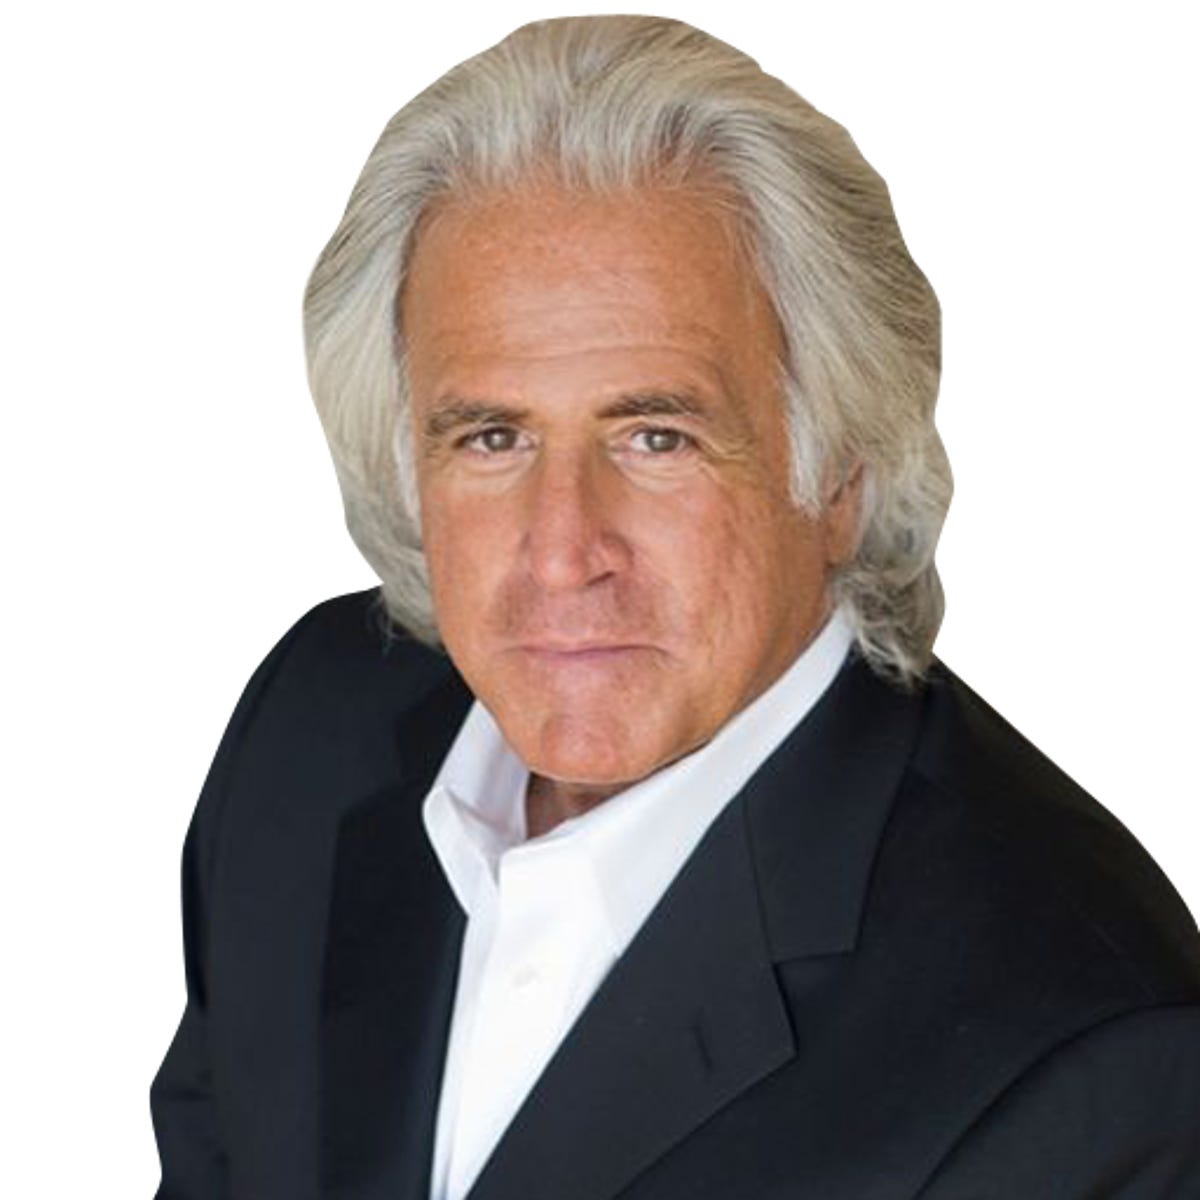 Bob Massi, Fox News legal analyst and 'Property Man' host, has died